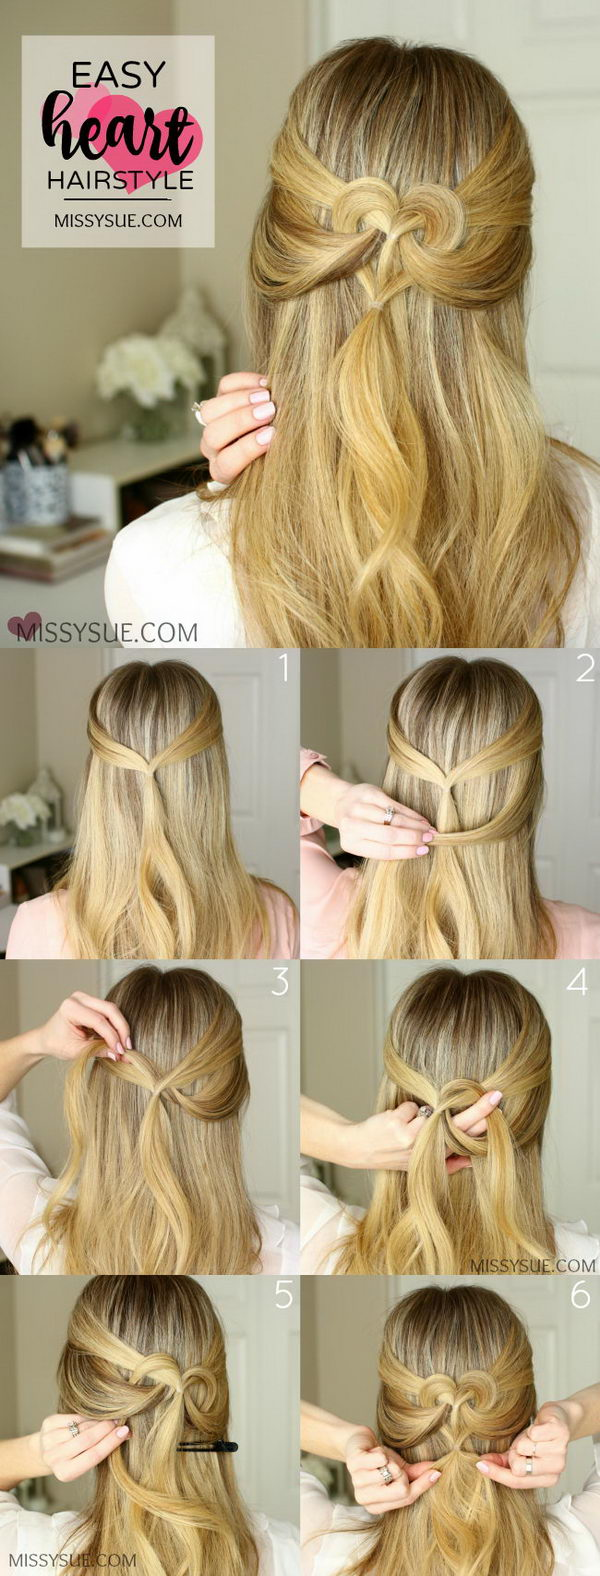 Heart Hairstyles 2 Ways.